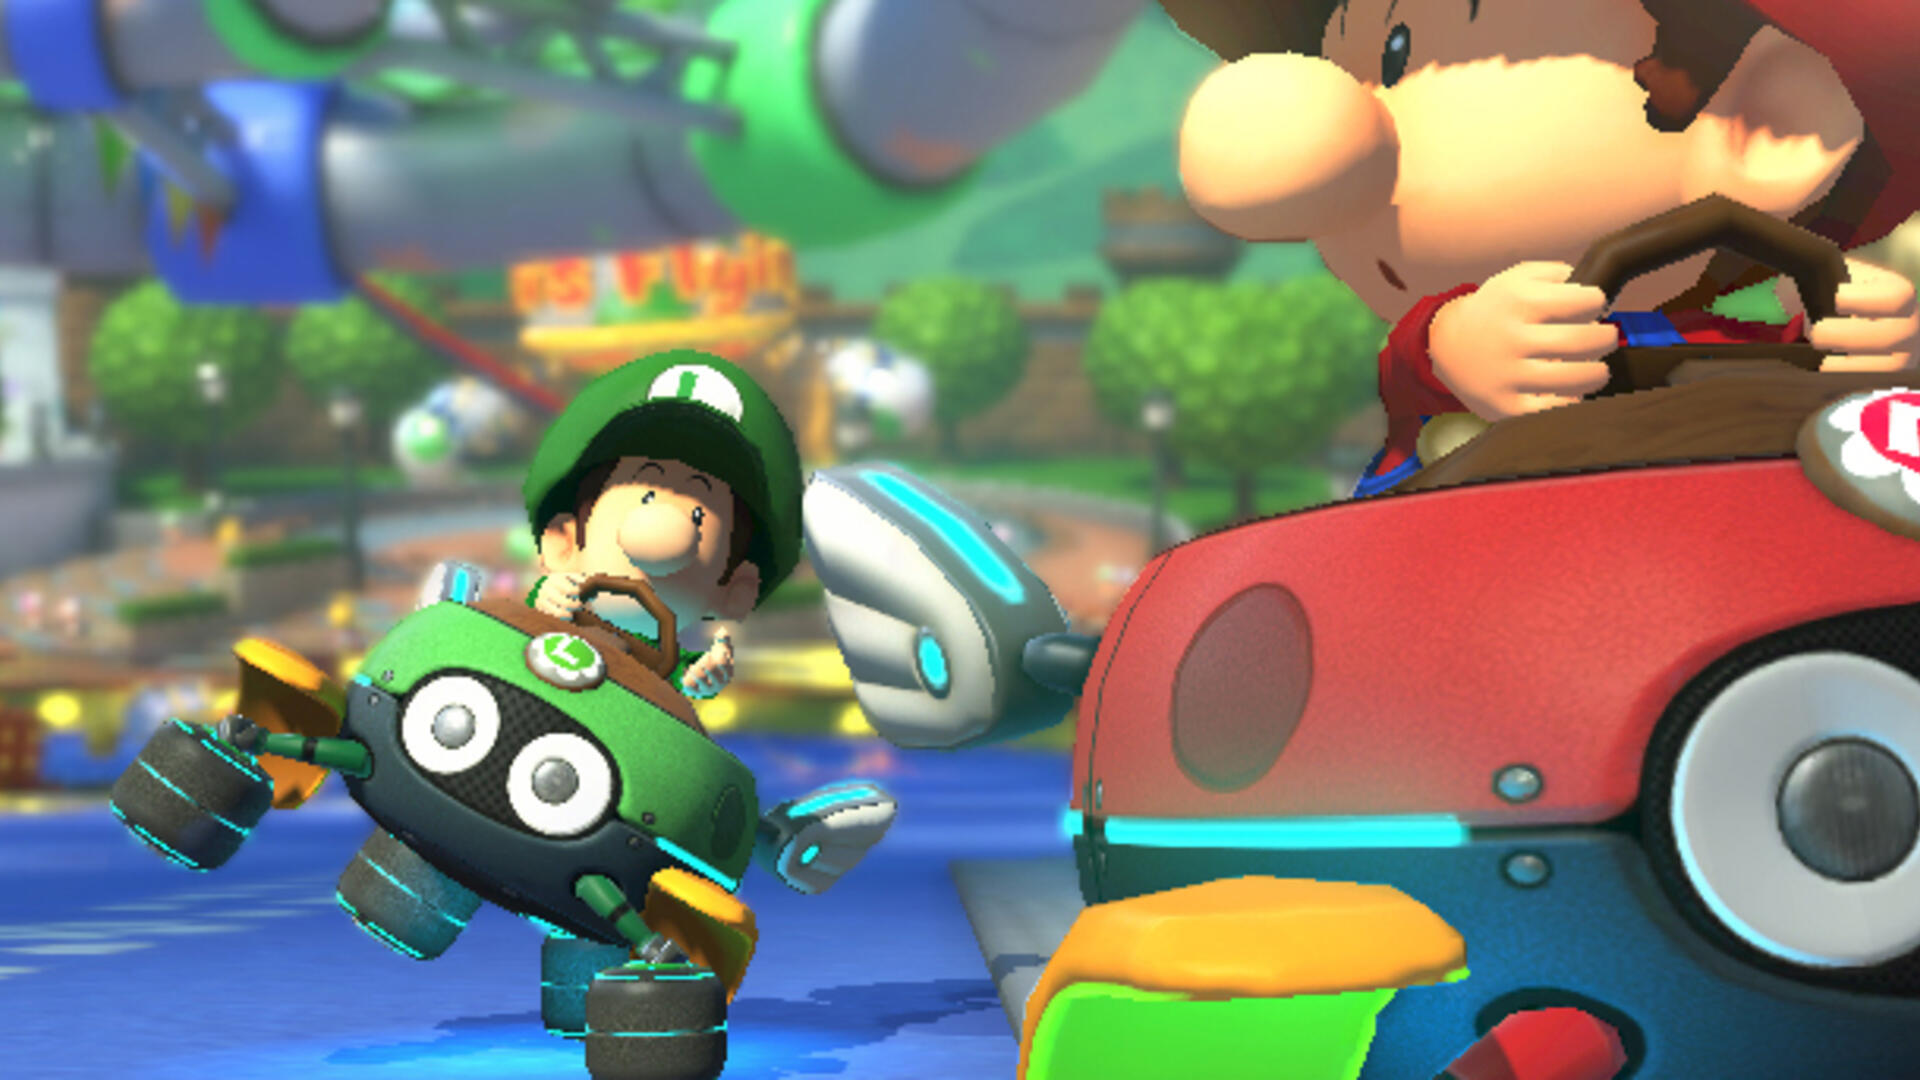 Baby Park Encapsulates the Chaos of Mario Kart